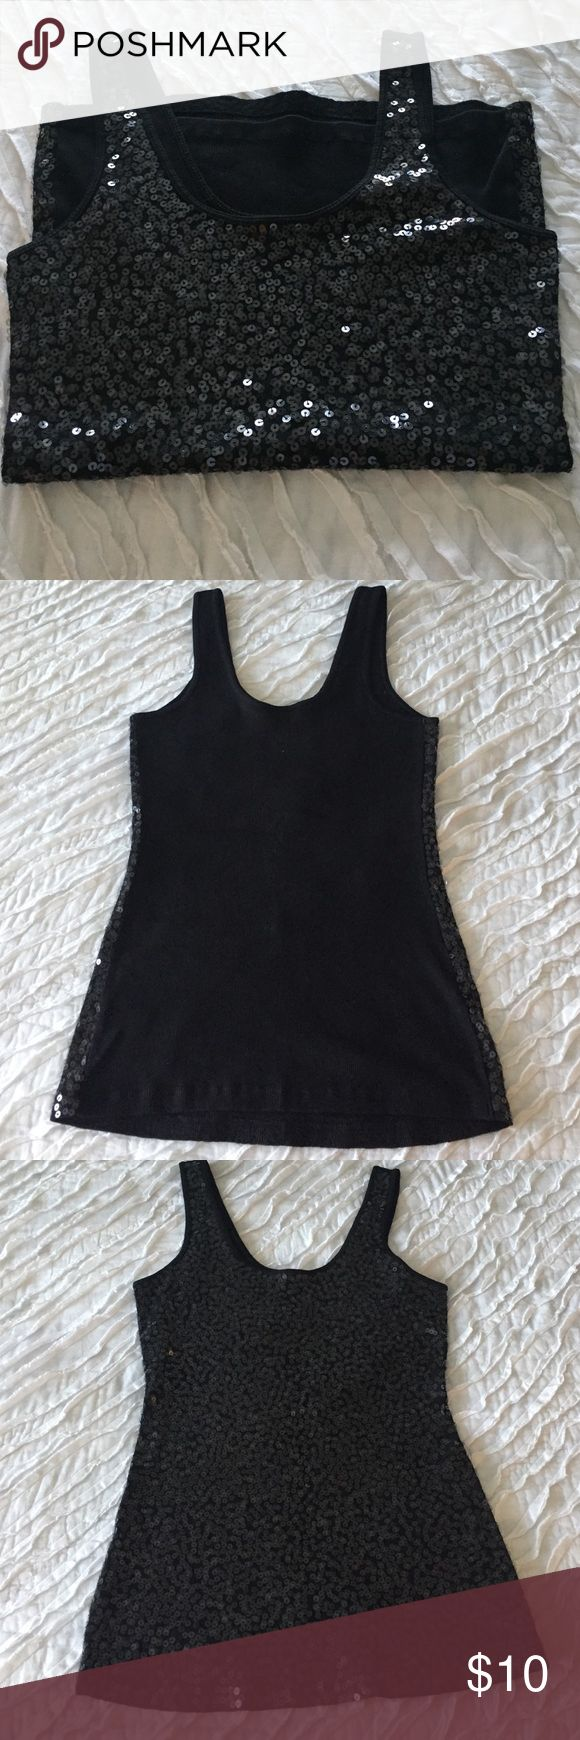 Sequined black tank top Fun and festive sequin black express tank top. Like new condition and maybe worn once. Express Tops Tank Tops